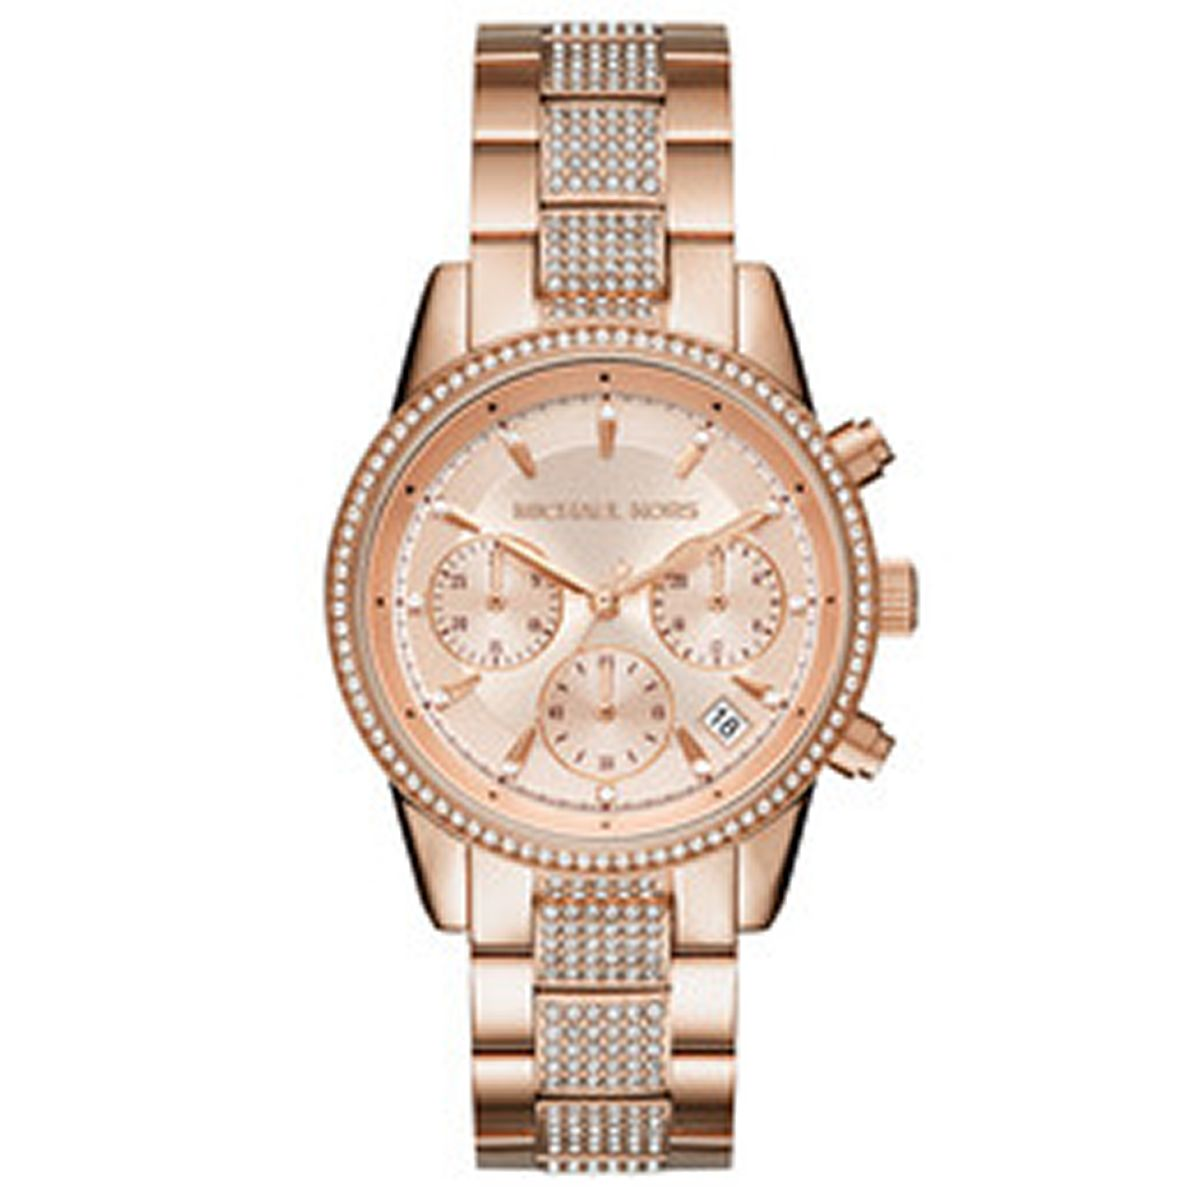 297b9493e45a Rose-Gold Michael Kors Watches - Macy s